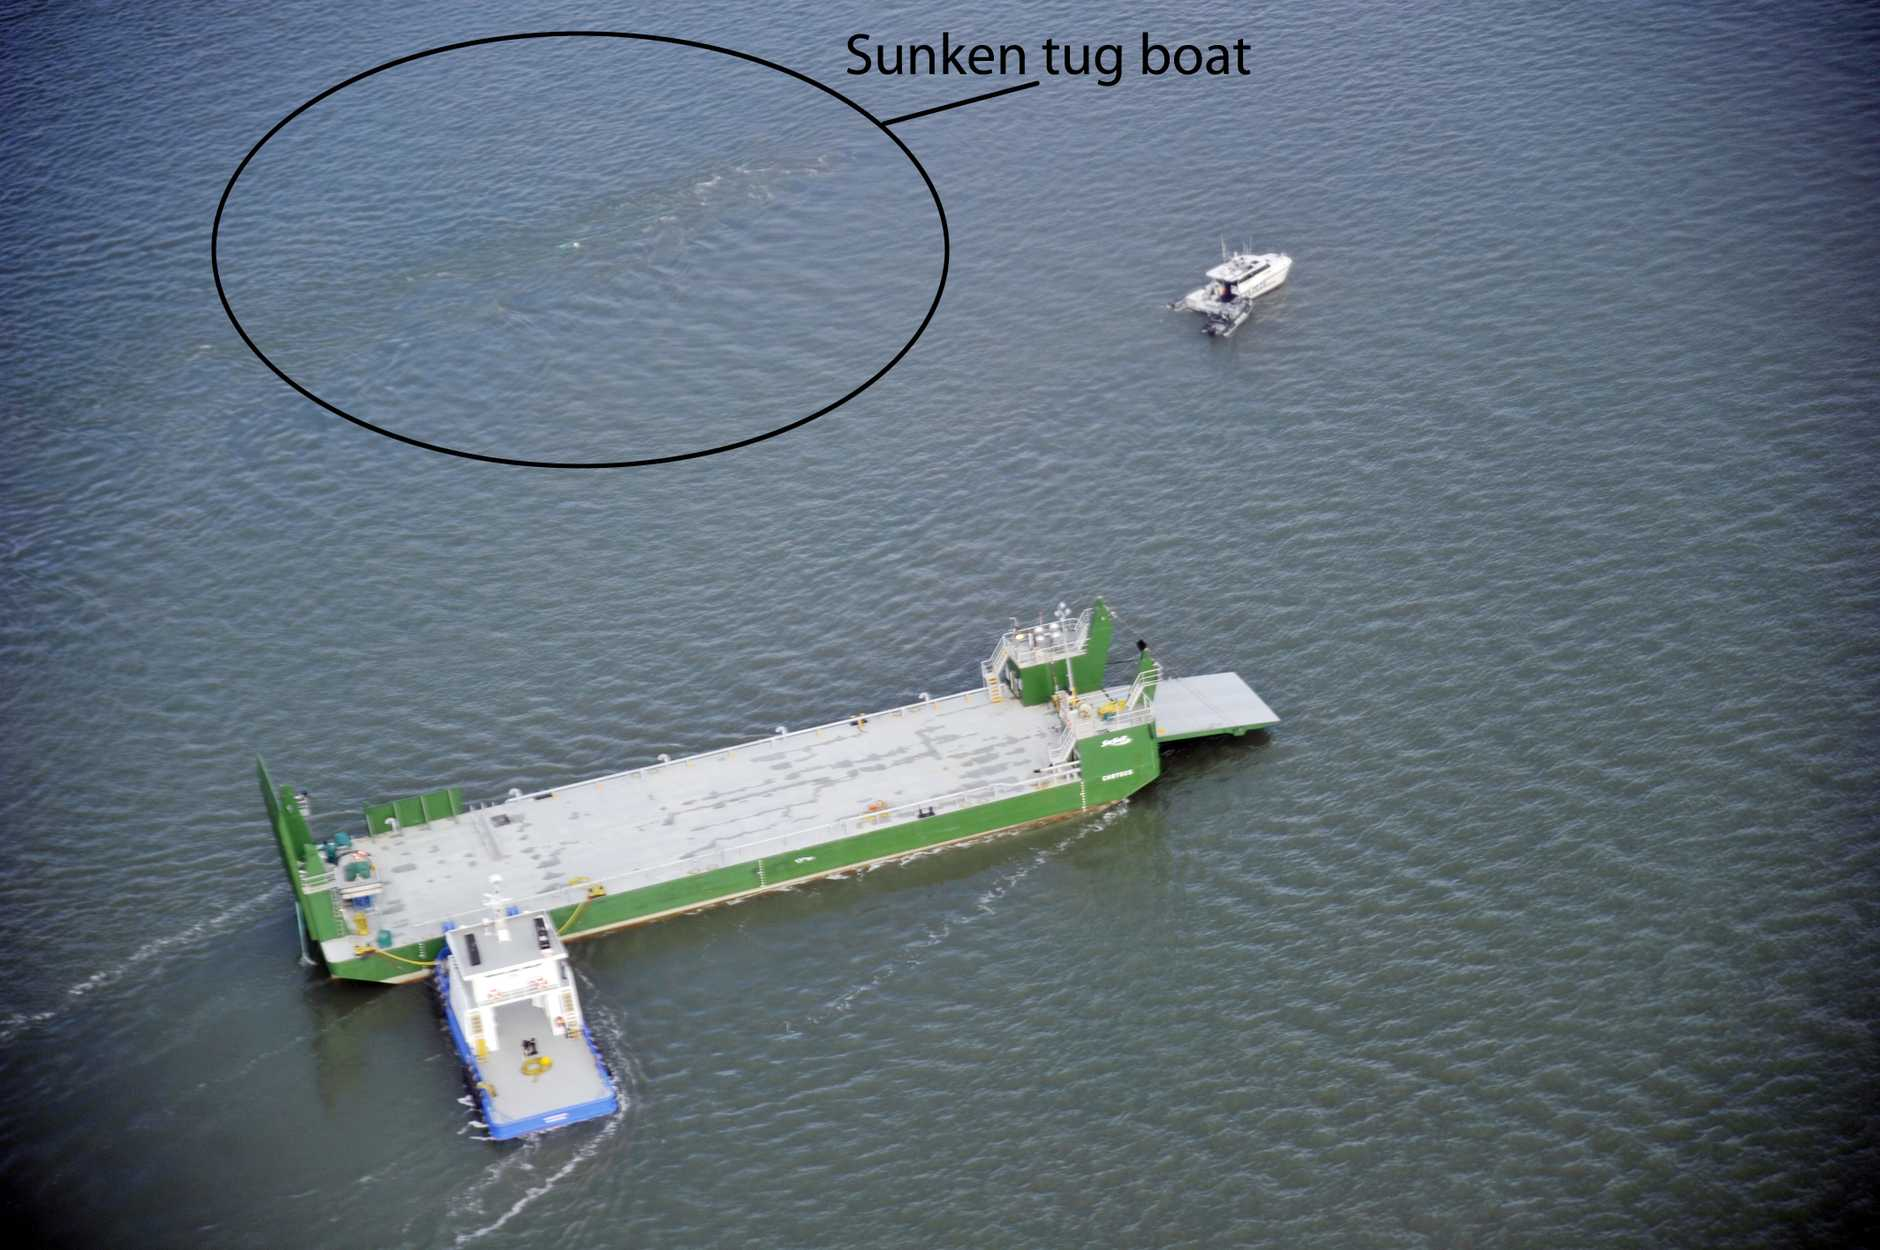 The tug boat was towing this water barge when it capsized and sank. The water can be seen rippling above the sunken tug boat.